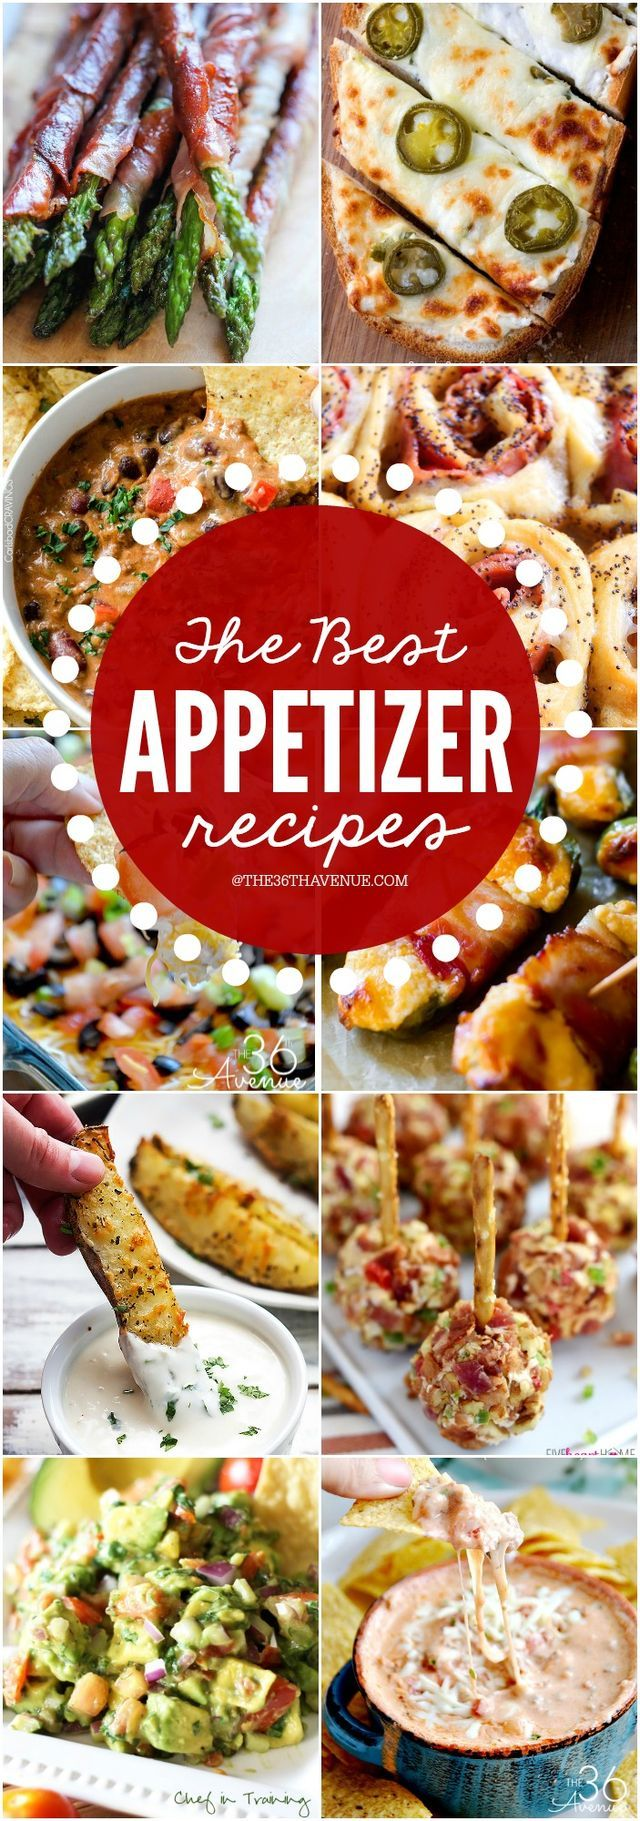 The Best Appetizer Recipes | The 36th AVENUE | Bloglovin'